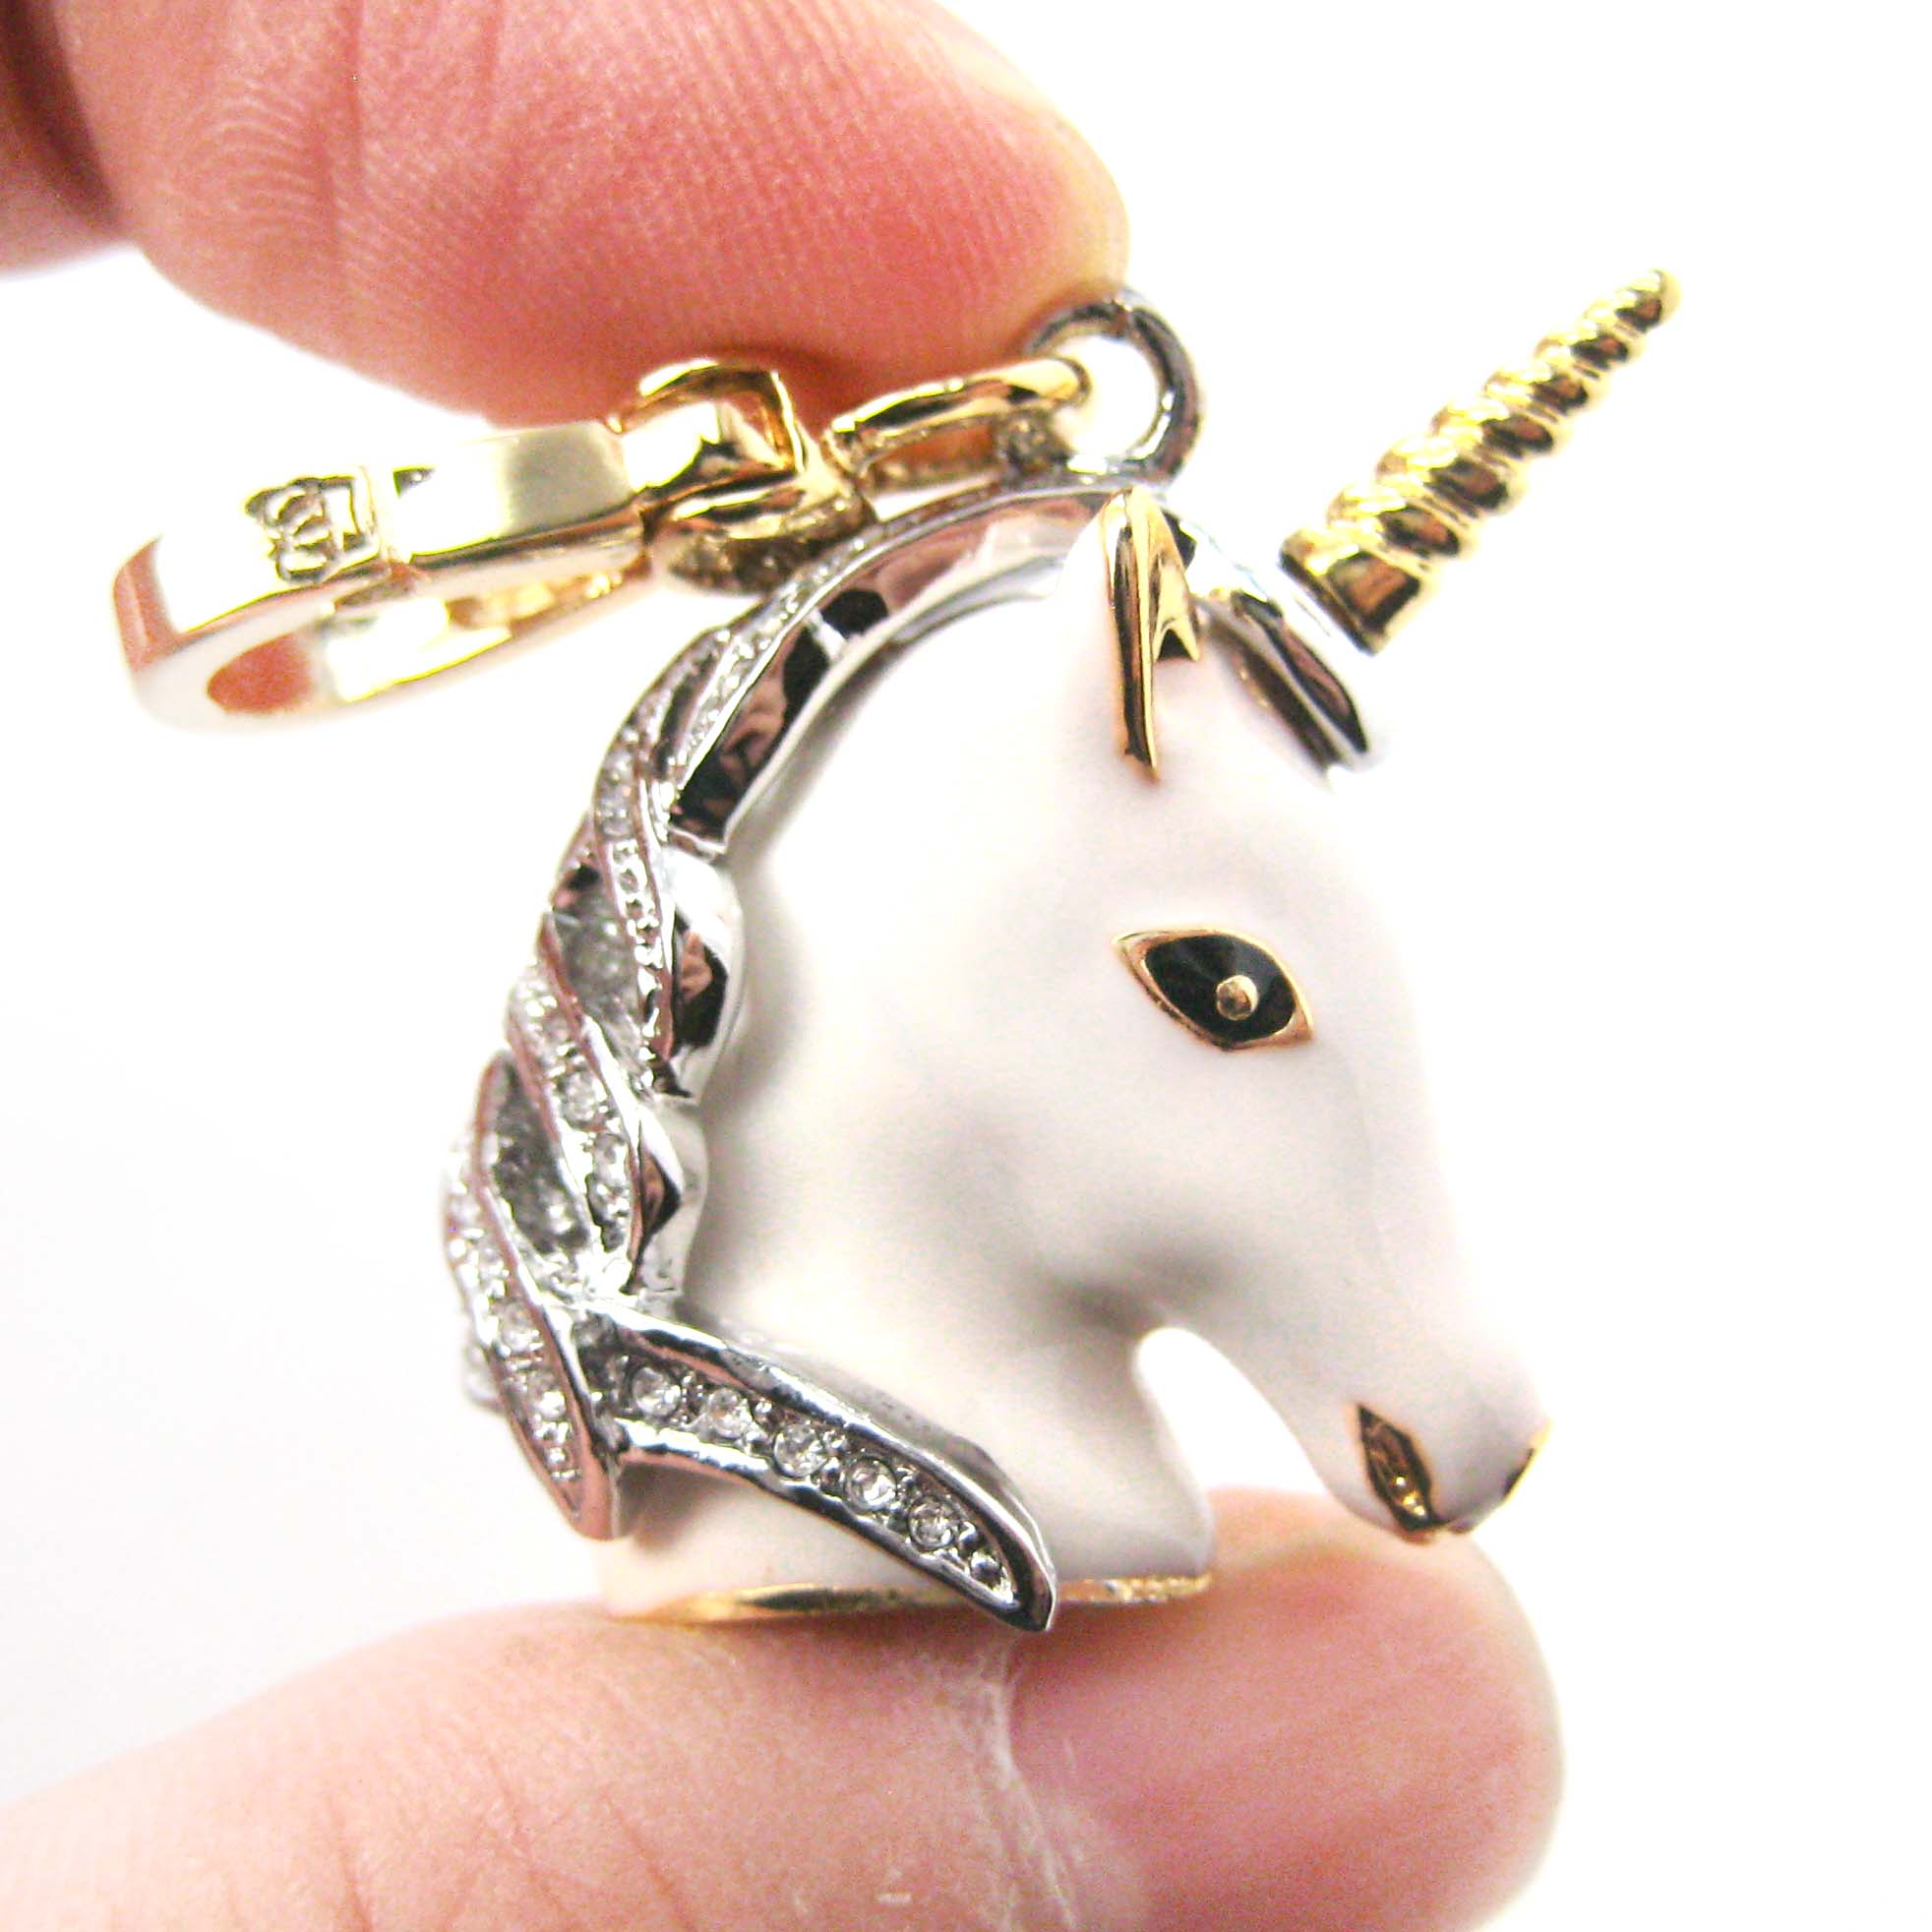 sterling silver striking jewelry pendant horse amulet animal